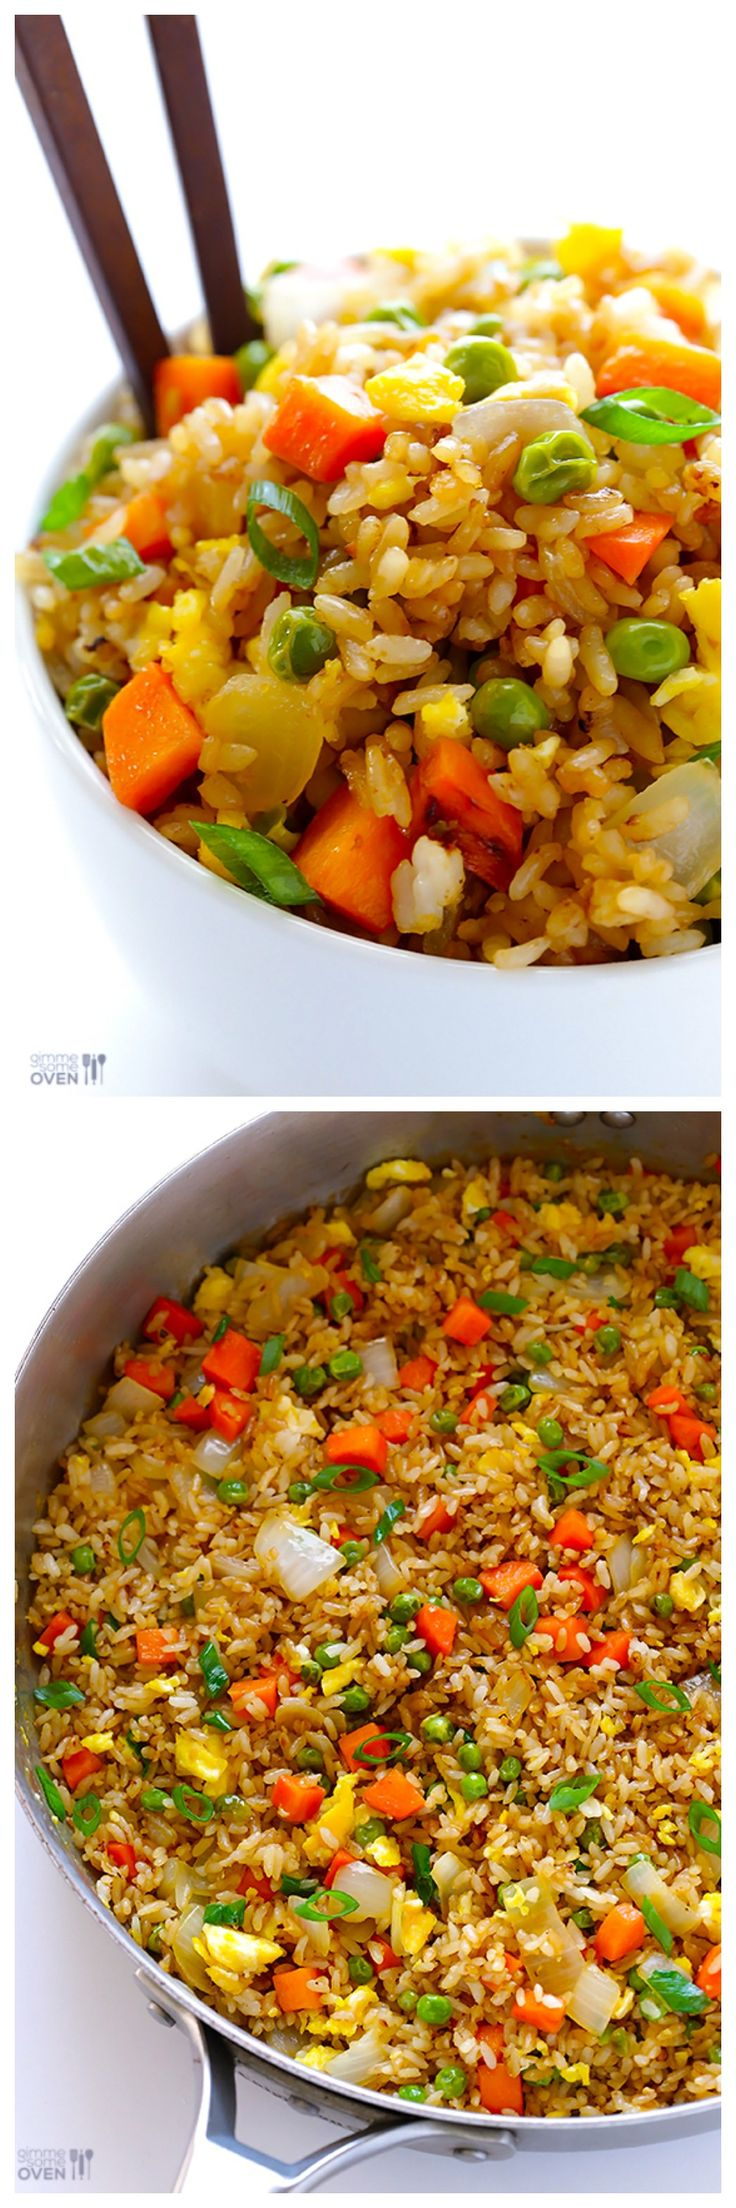 ... Rice Recipes, Fried Rice Recipe, Http Gimmesomeoven Com, Fries Rice